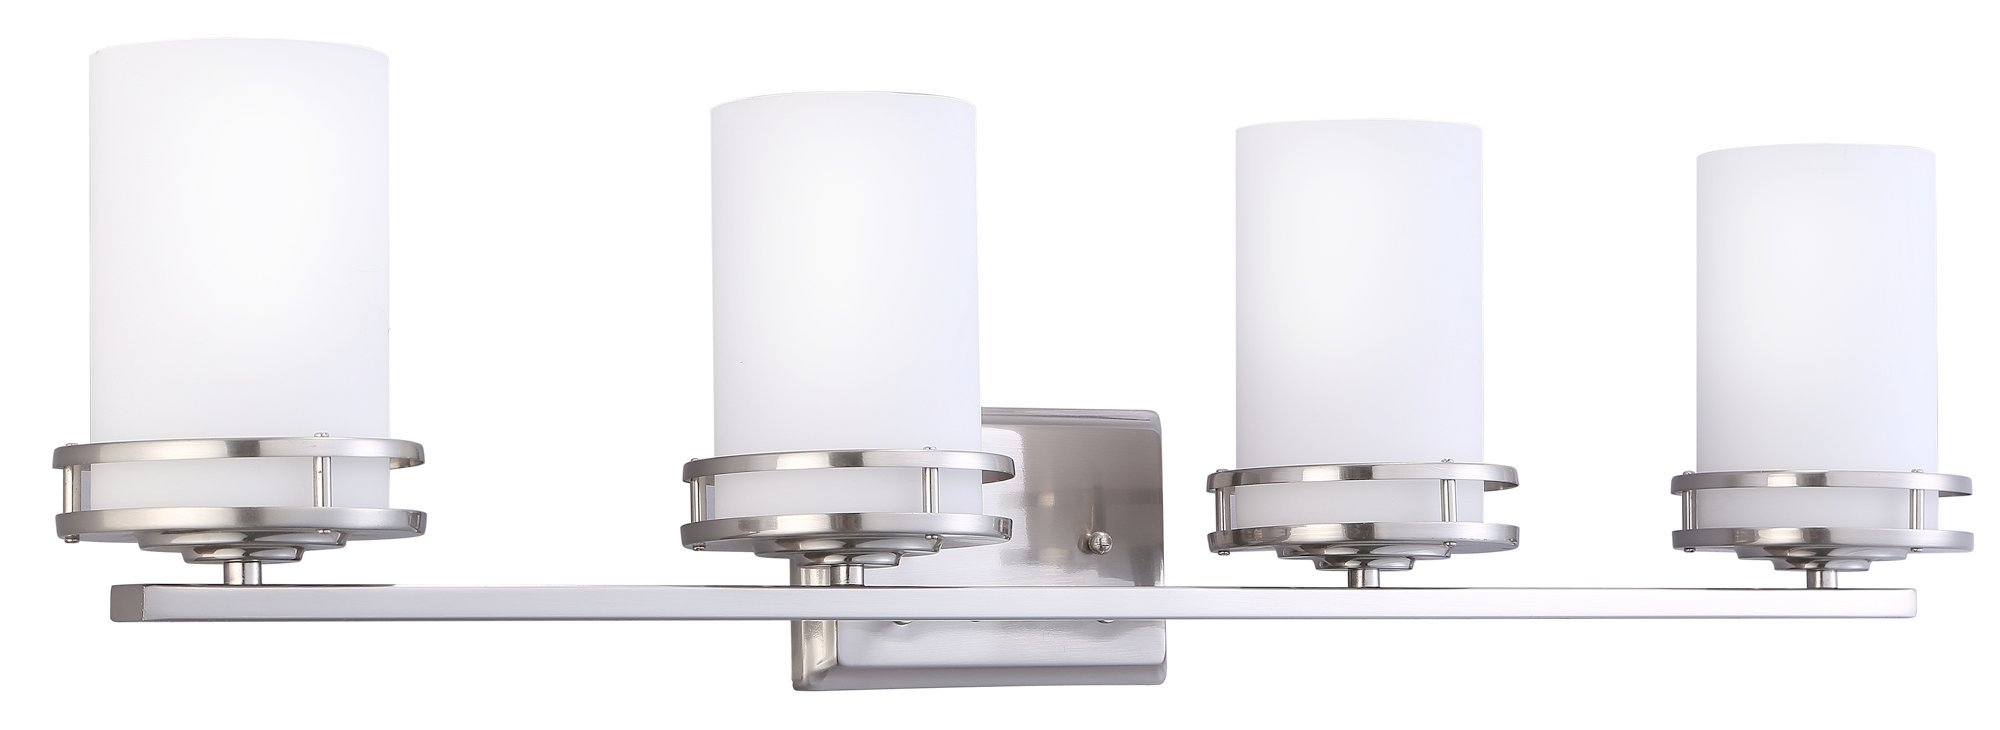 CloudyBay CB17006-BN Bathroom Vanity Light Fixture,4-Bulb Wall Sconce with Opal Glass Shade,UL Listed,Brushed Nickel Finish